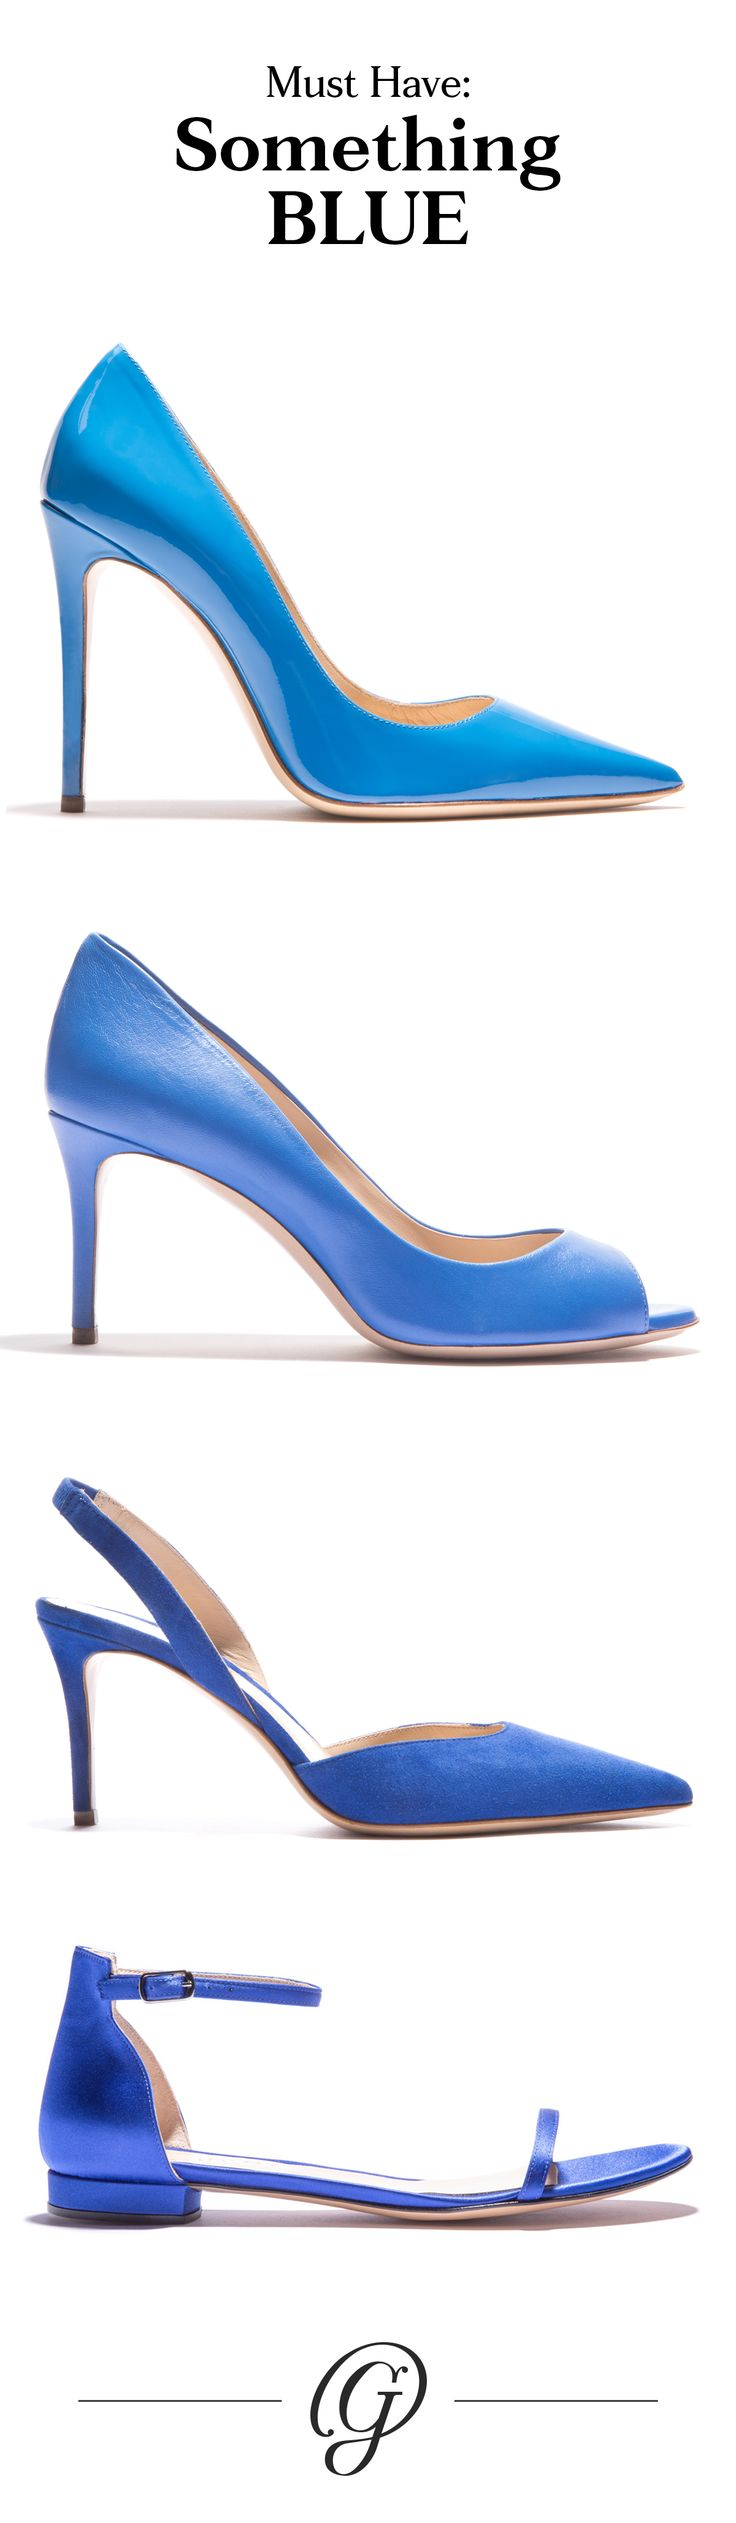 """I do. I do. I do. I do (want limited-edition Italian shoes for the big day). These handcrafted beauties solved the """"Something Blue"""" for summer weddings and lend all our whites a colorful touch long after the big day."""